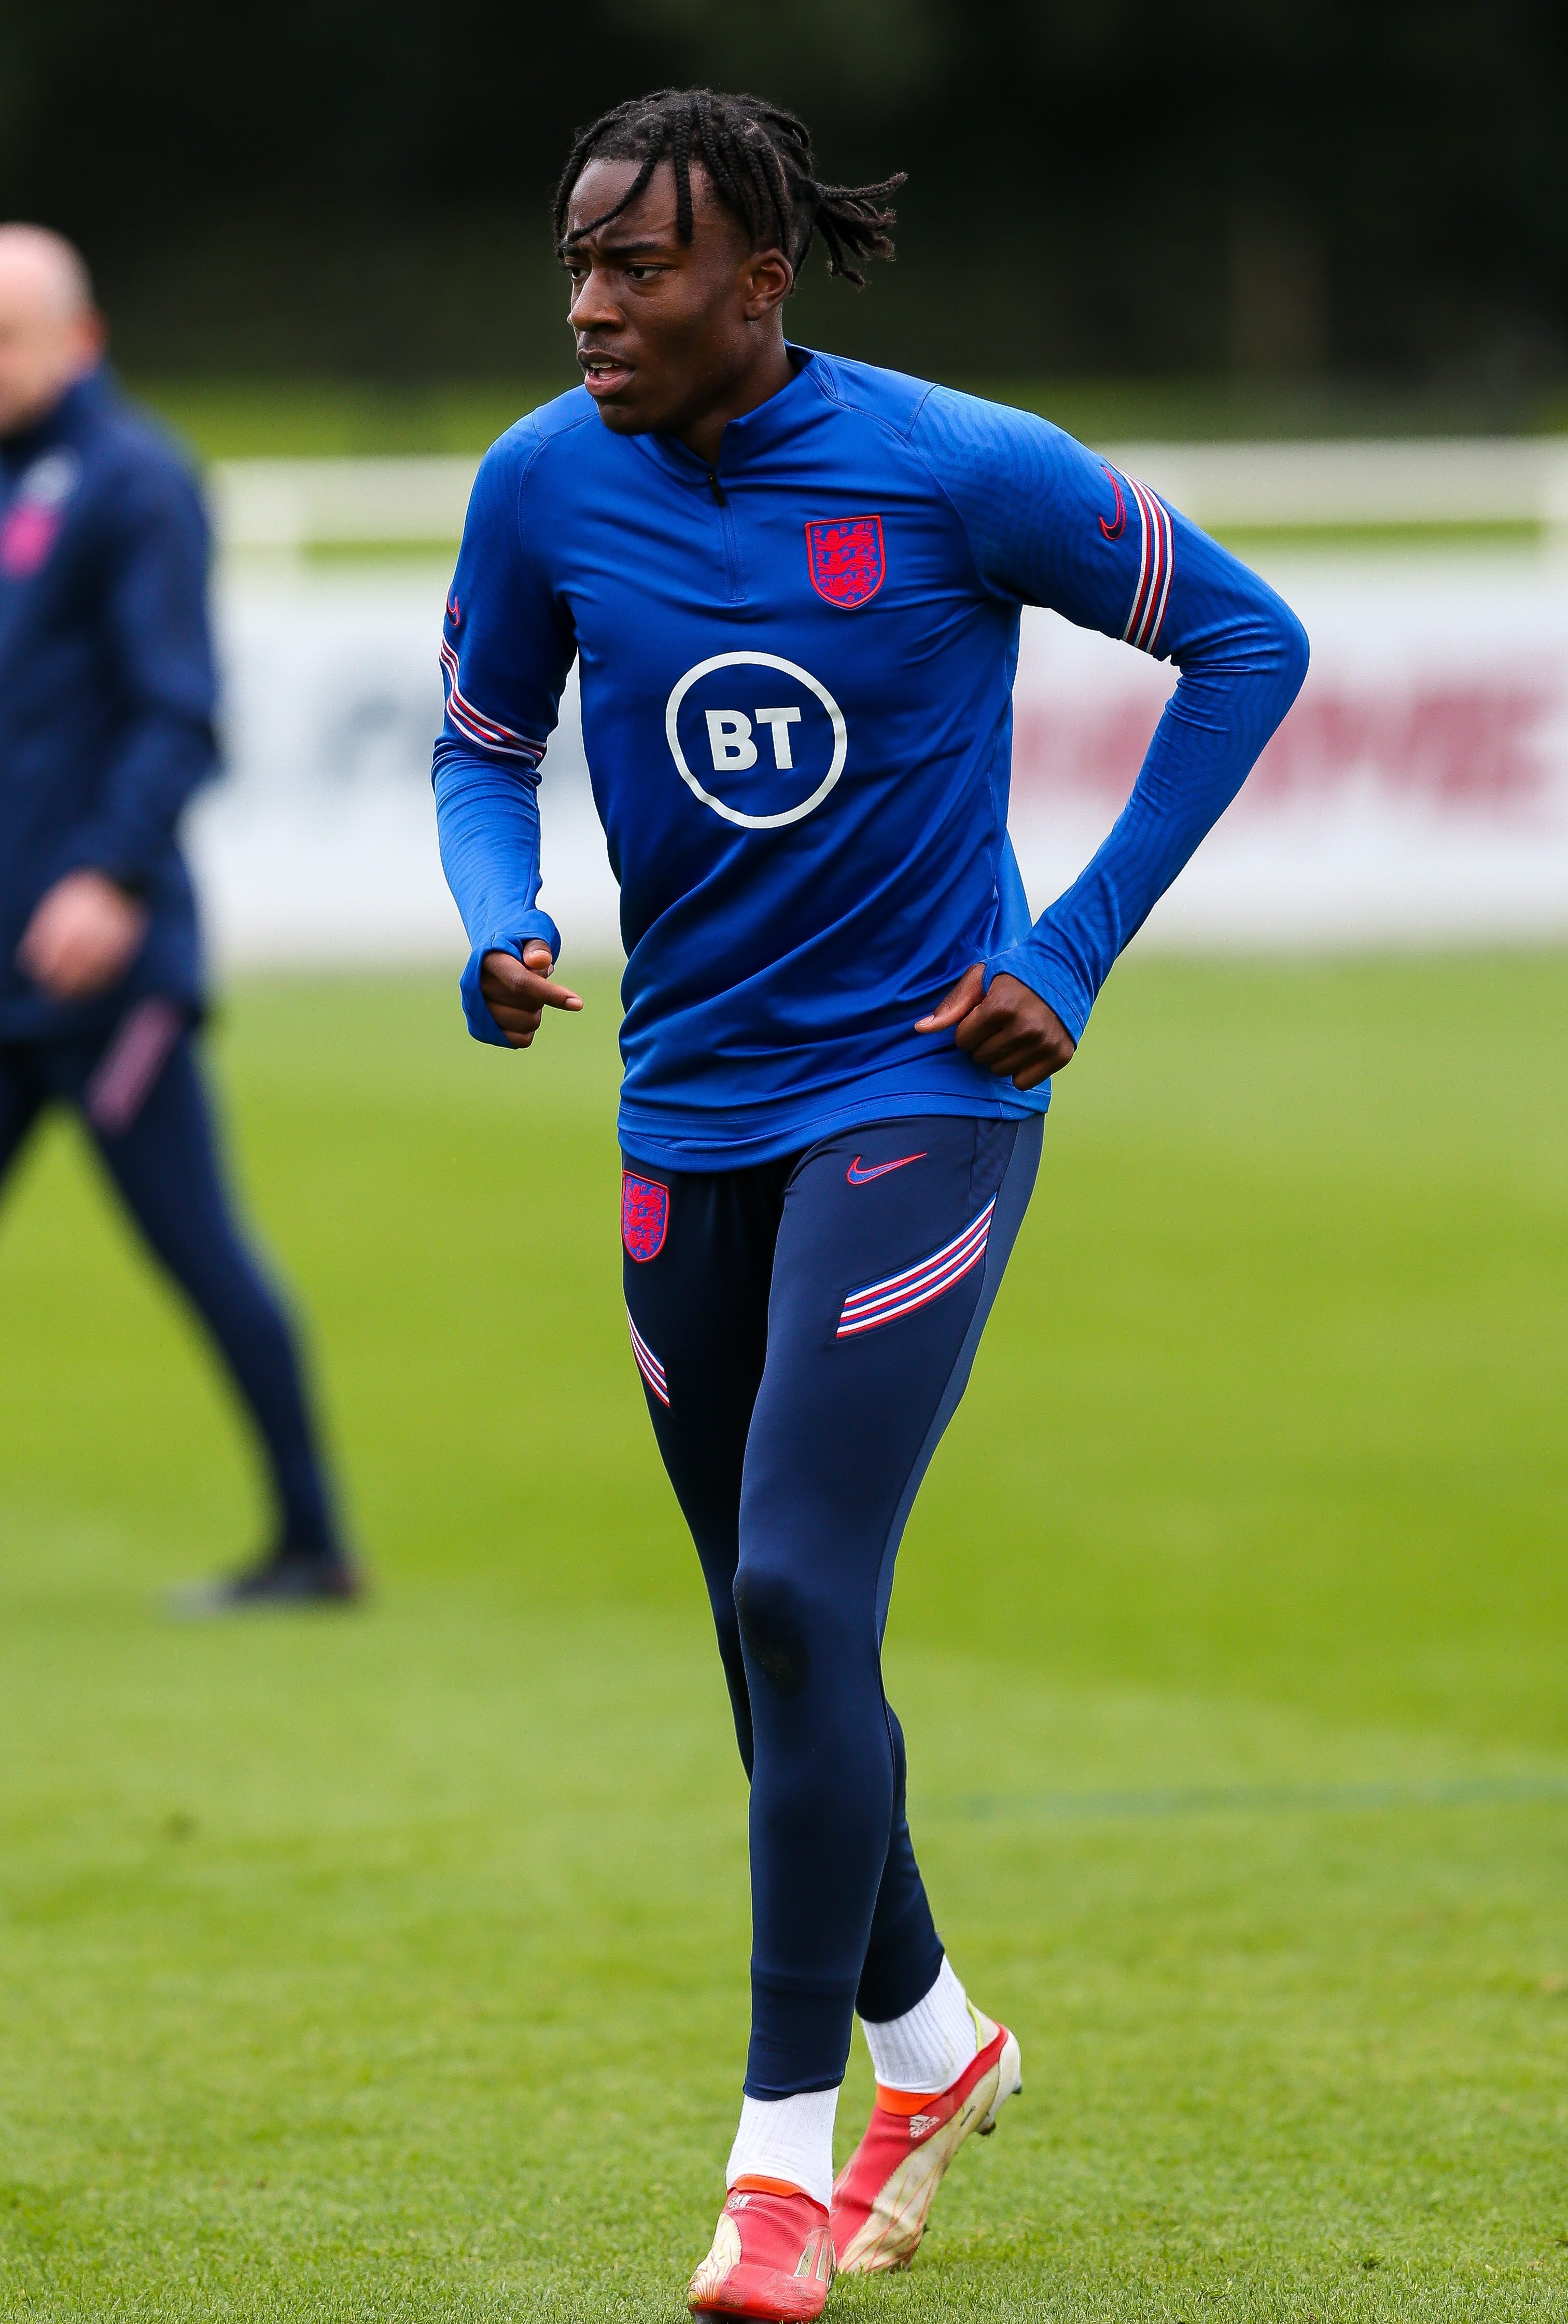 Madueke is hoping to make the jump from under-21s to the England senior side